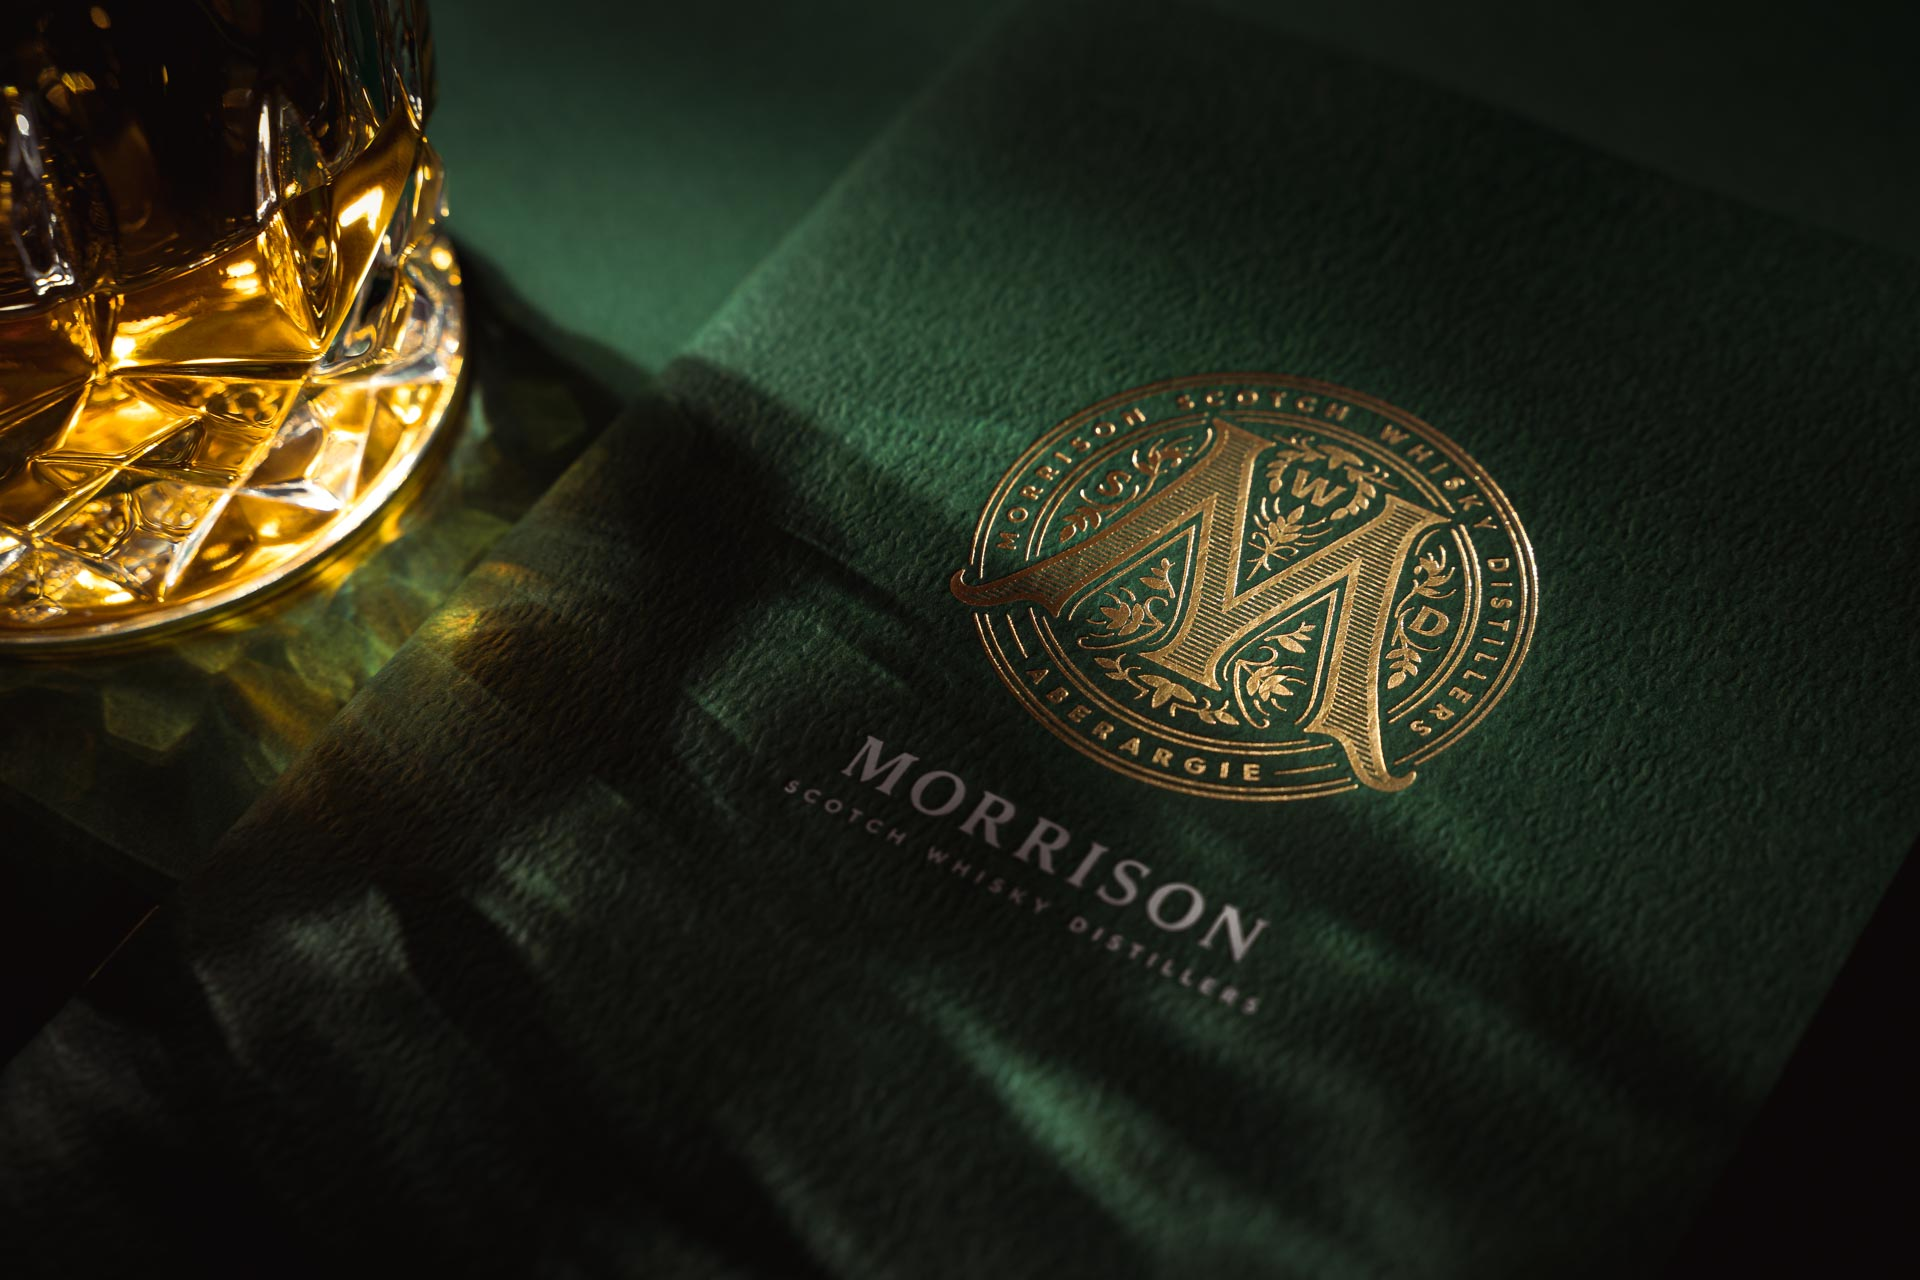 Corporate Brochure for Morrison Scotch Whisky Distillers by Stckmn